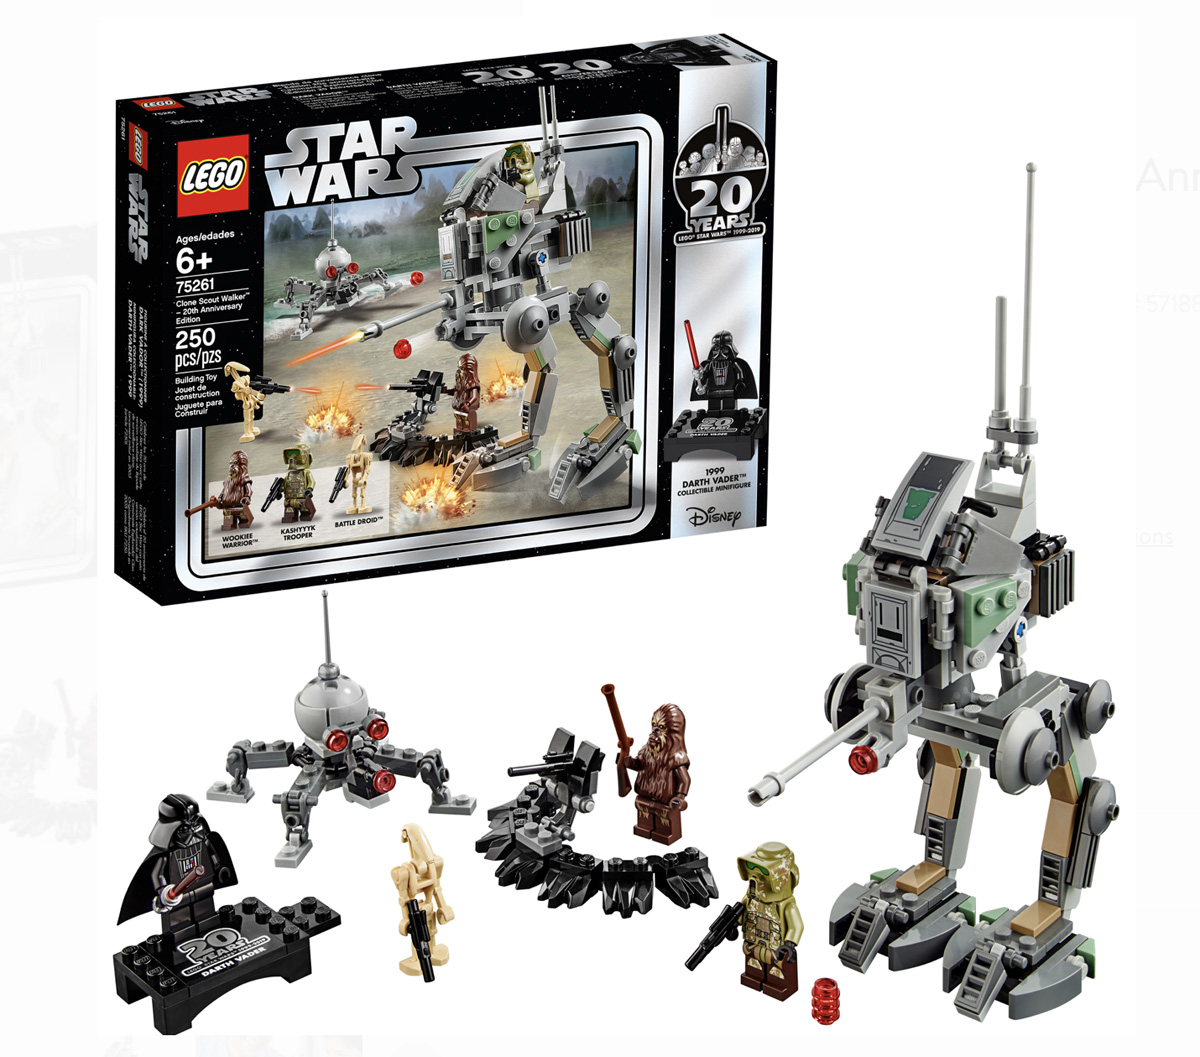 Set Lego de Star Wars